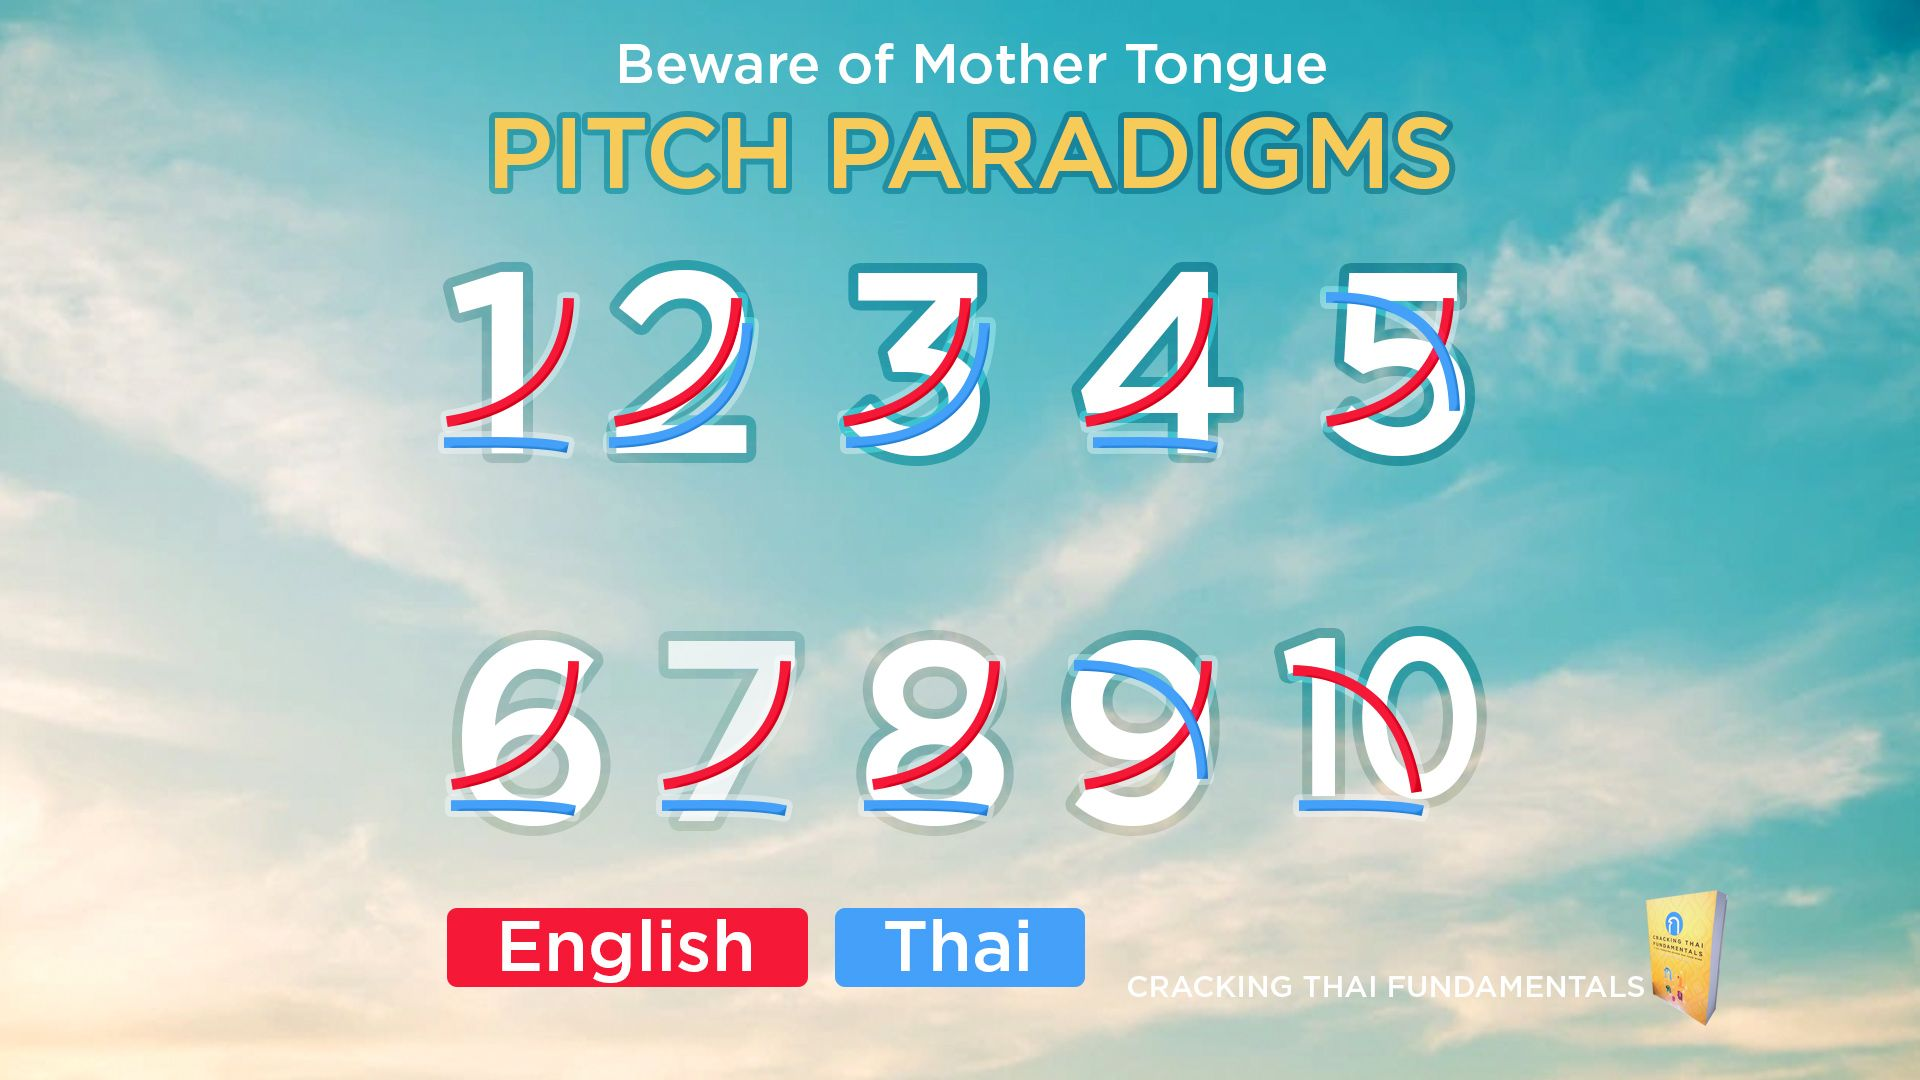 Unlearning Pitch Paradigms from our Mother Tongues